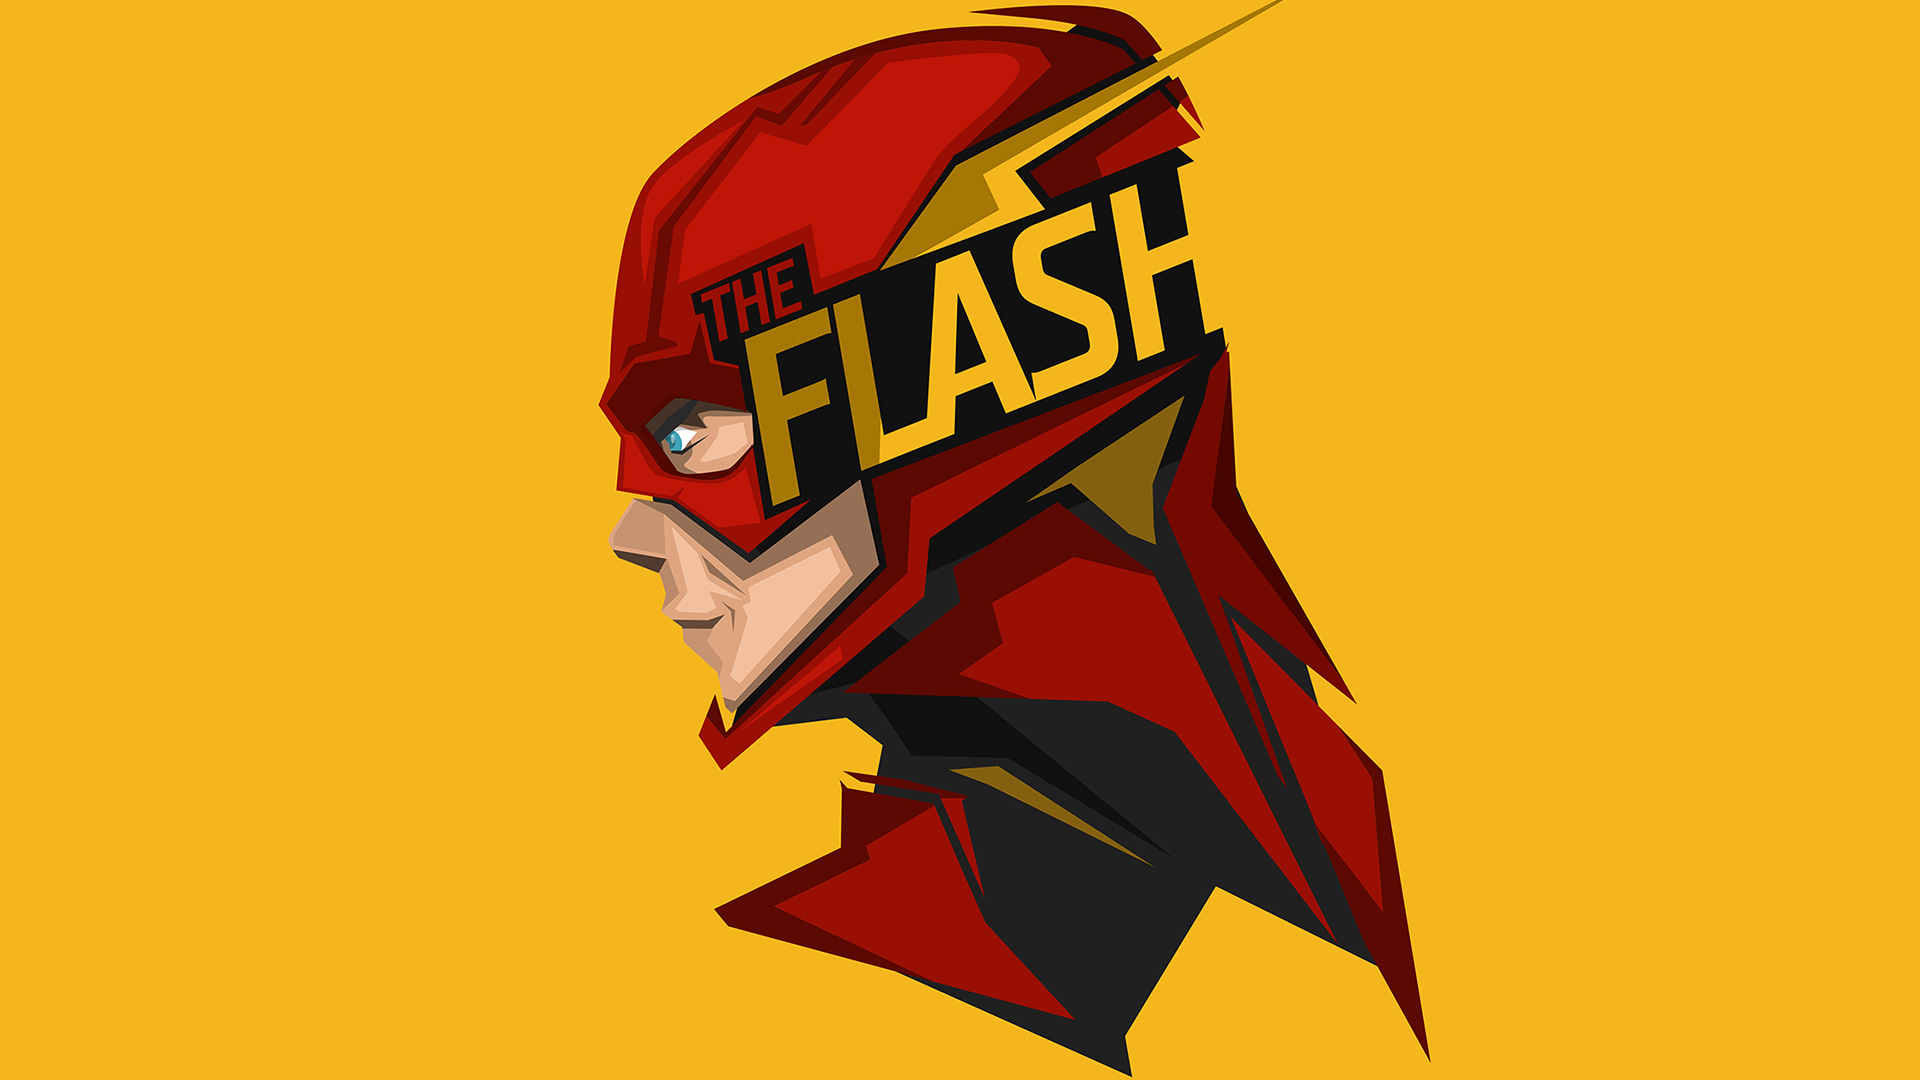 Cool Flash Wallpapers   1920x1080